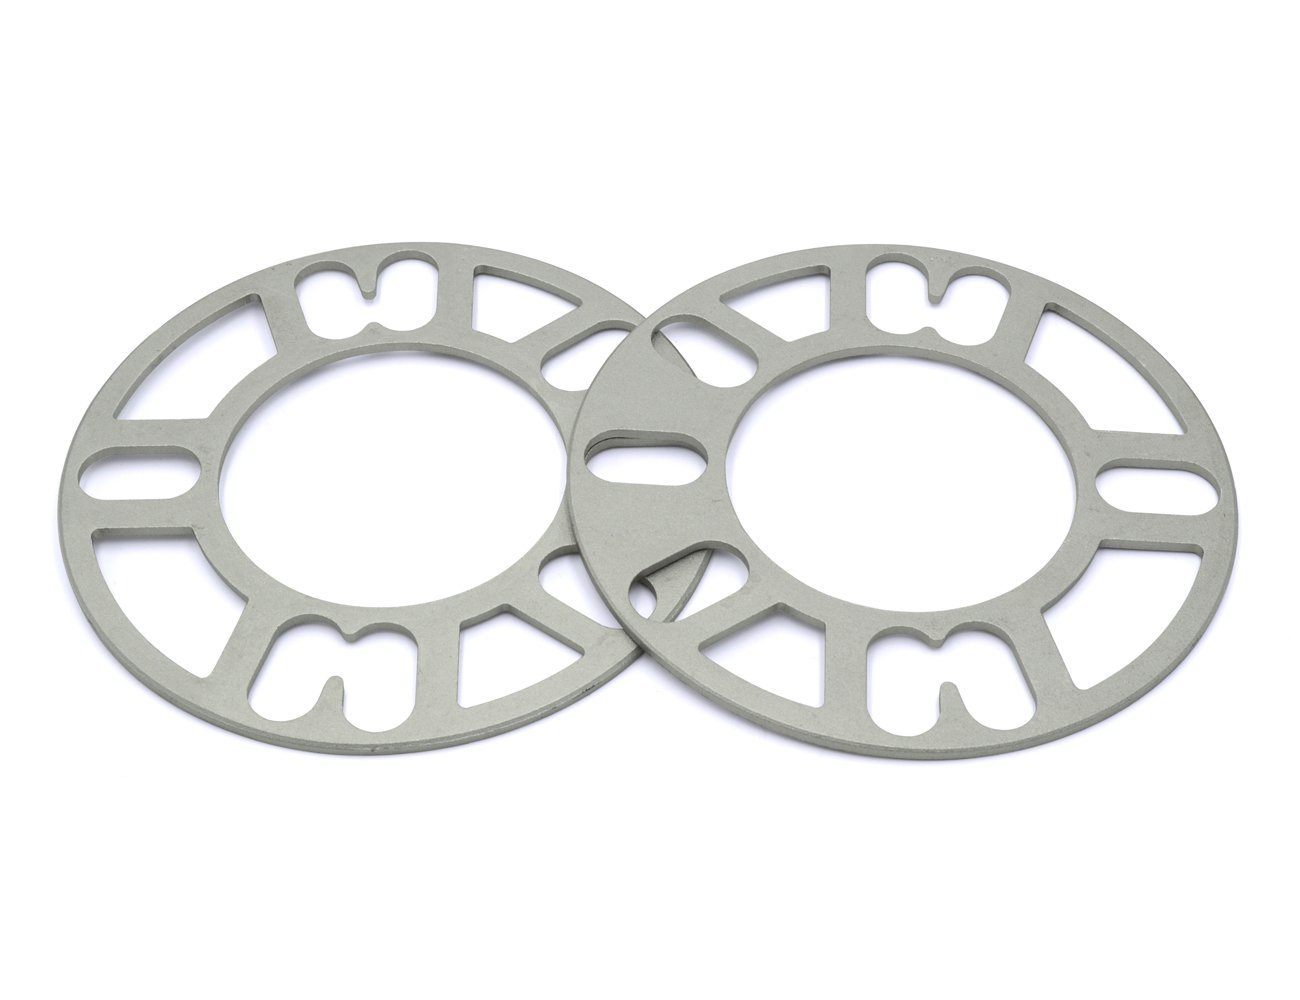 GoldenSunny Pack of 2, Aluminum Alloy 4 and 5 Lug 3mm Thickness Universal Wheel Spacers - Fit PCD 98-120